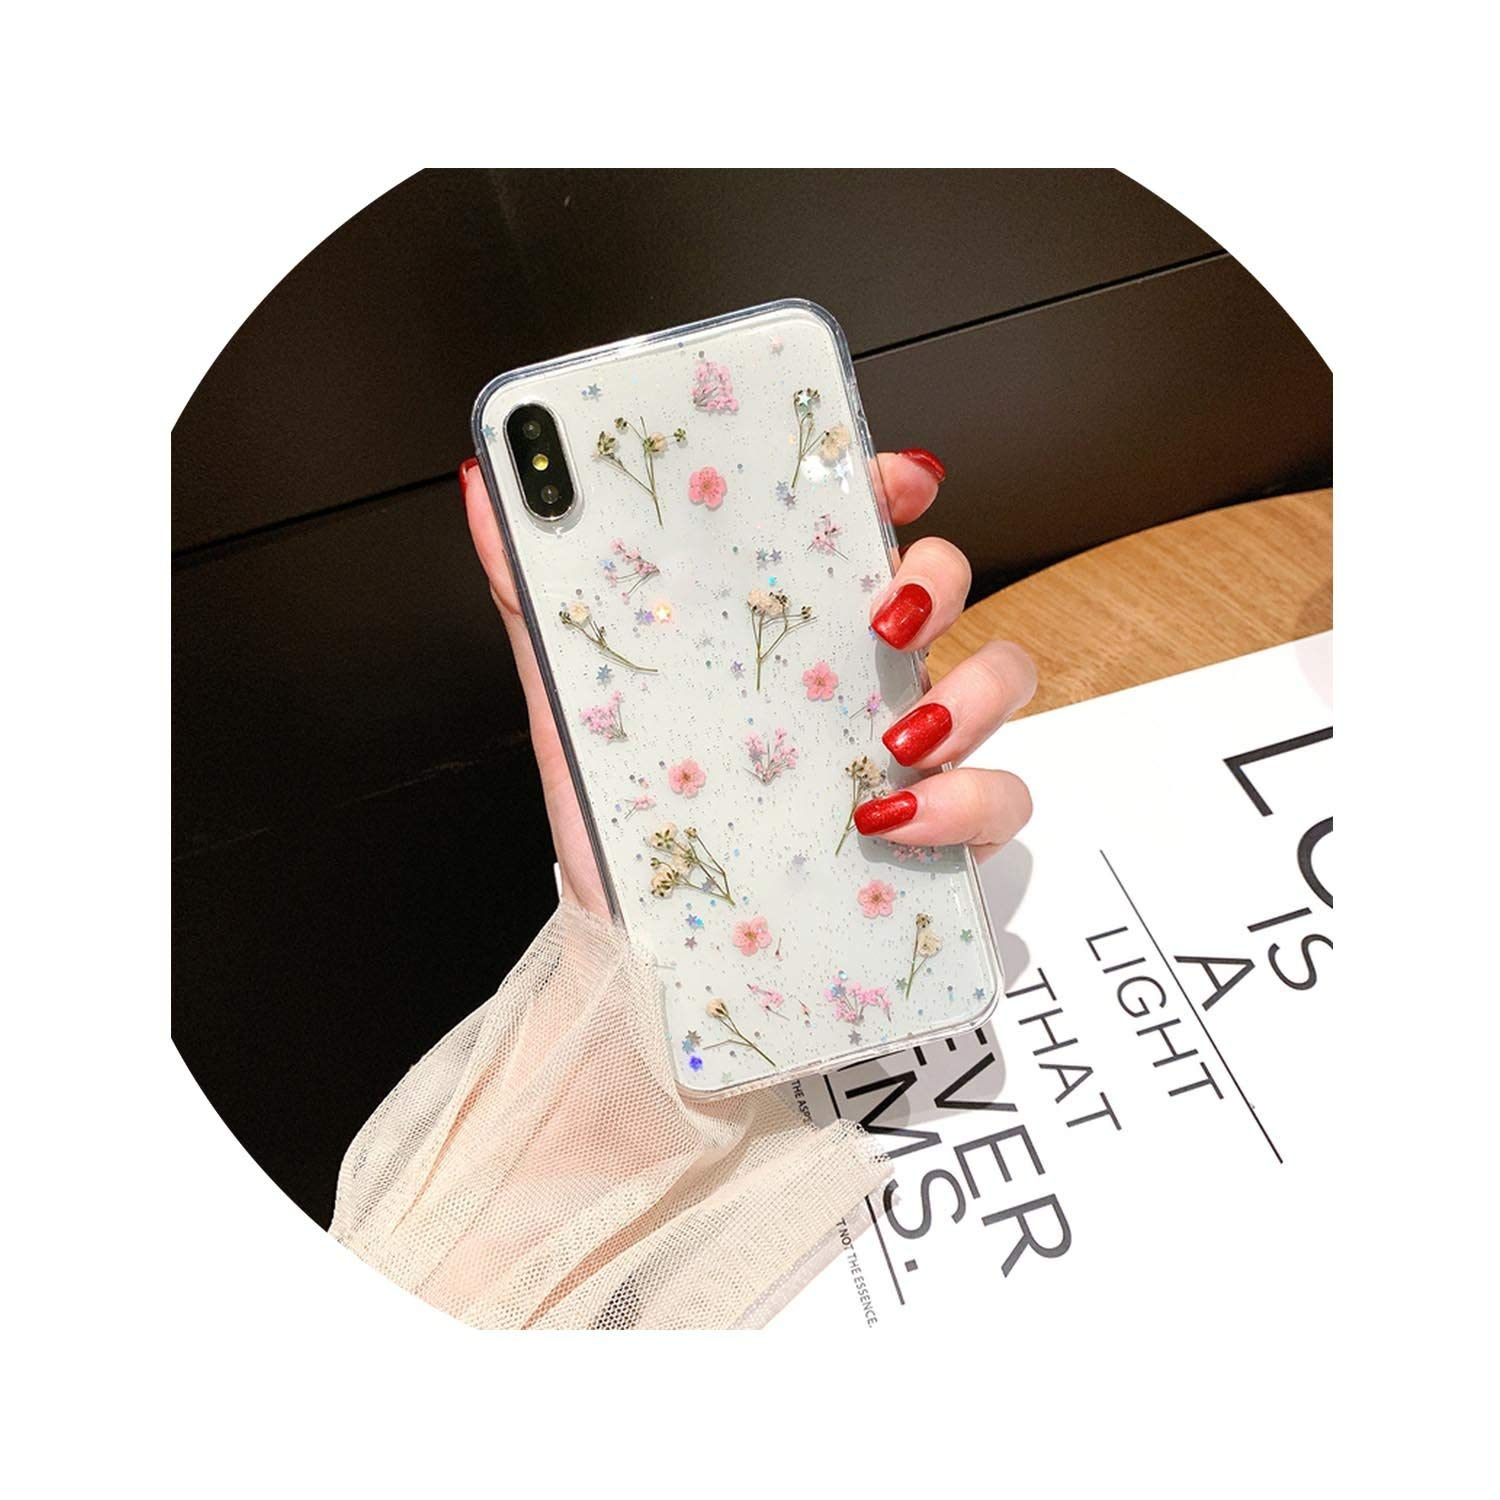 Real Pressed Dried Flowers Phone Case for iPhone Xs Max XR 6 6s 7 8 Plus X Silicon TPU Clear Floral Cover Cases,4,for iPhone 7 8